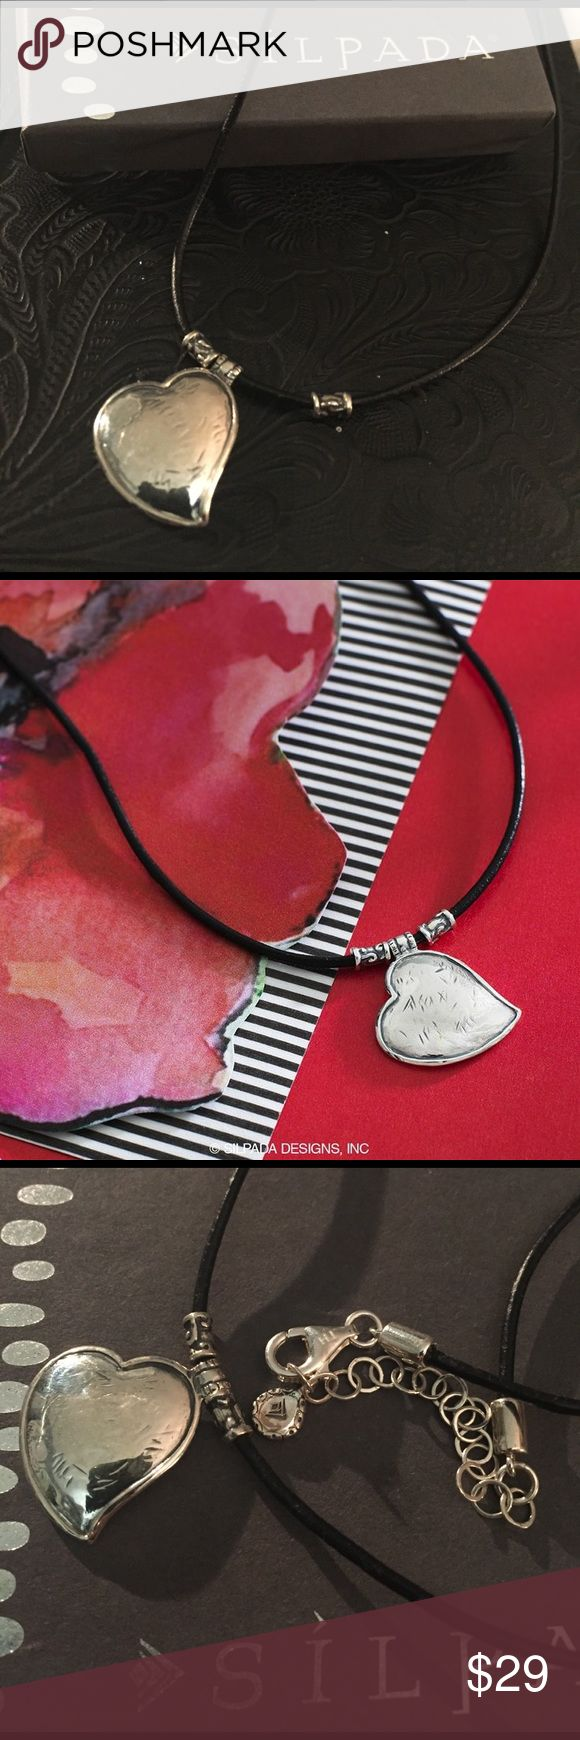 "Silpada Necklace New. Silpada ""You've Got Heart"" Necklace. Genuine leather chain and Sterling Silver Heart. Adjusts 18-20"". Comes with original packaging and box. Silpada Jewelry Necklaces"